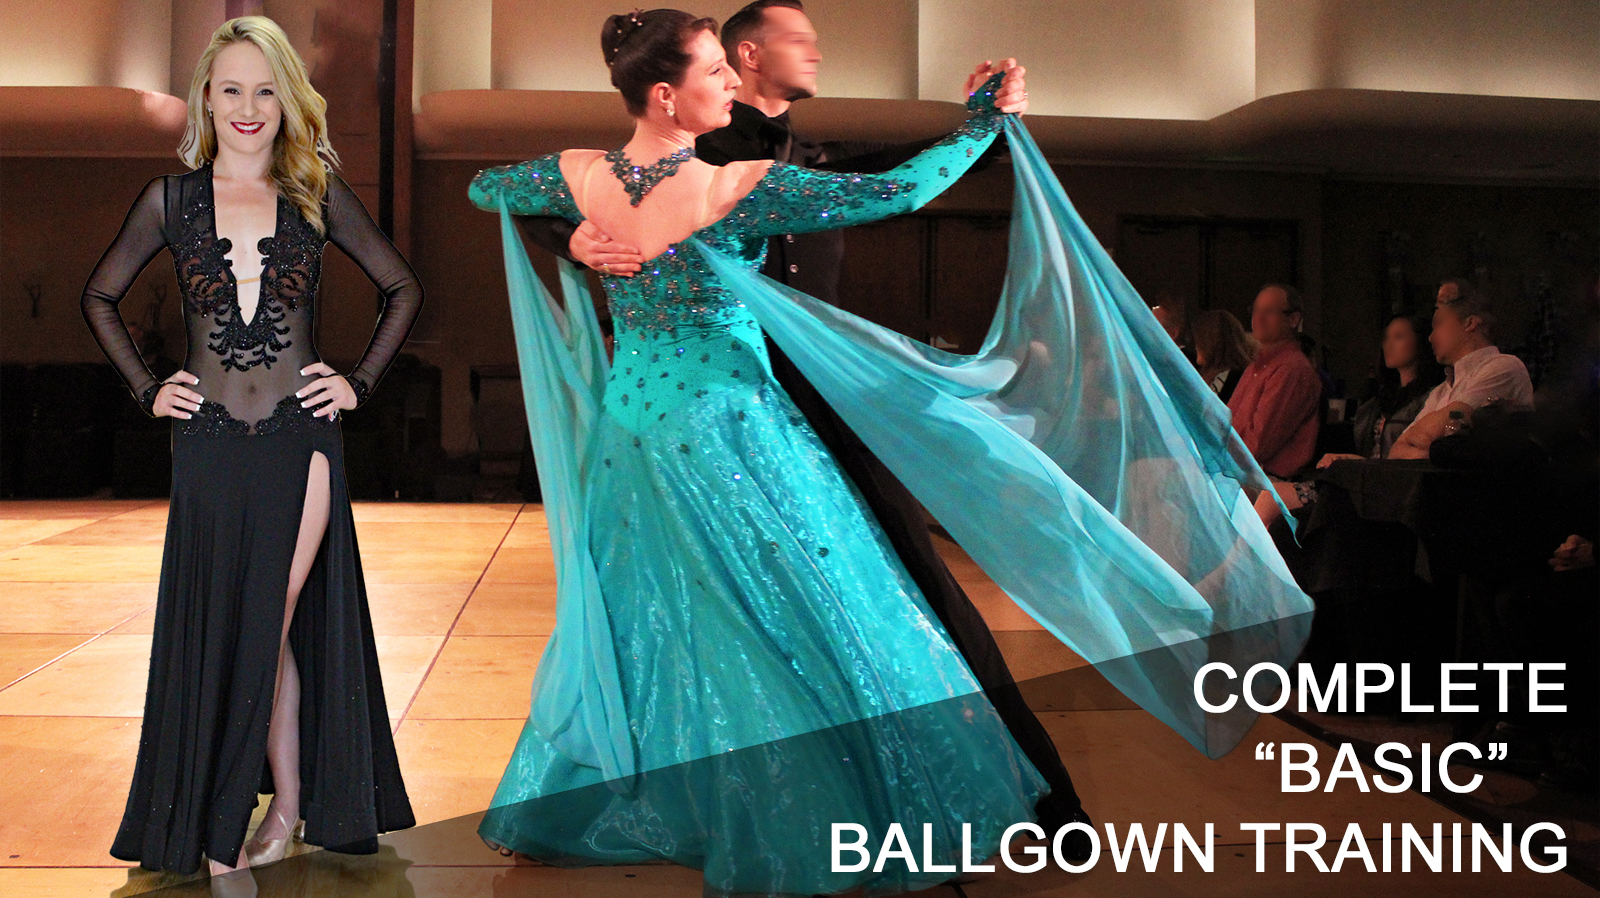 How to make a competition Dancesport ballgown. Get complete ballgown training with the professional tools and tips you need to succeed.